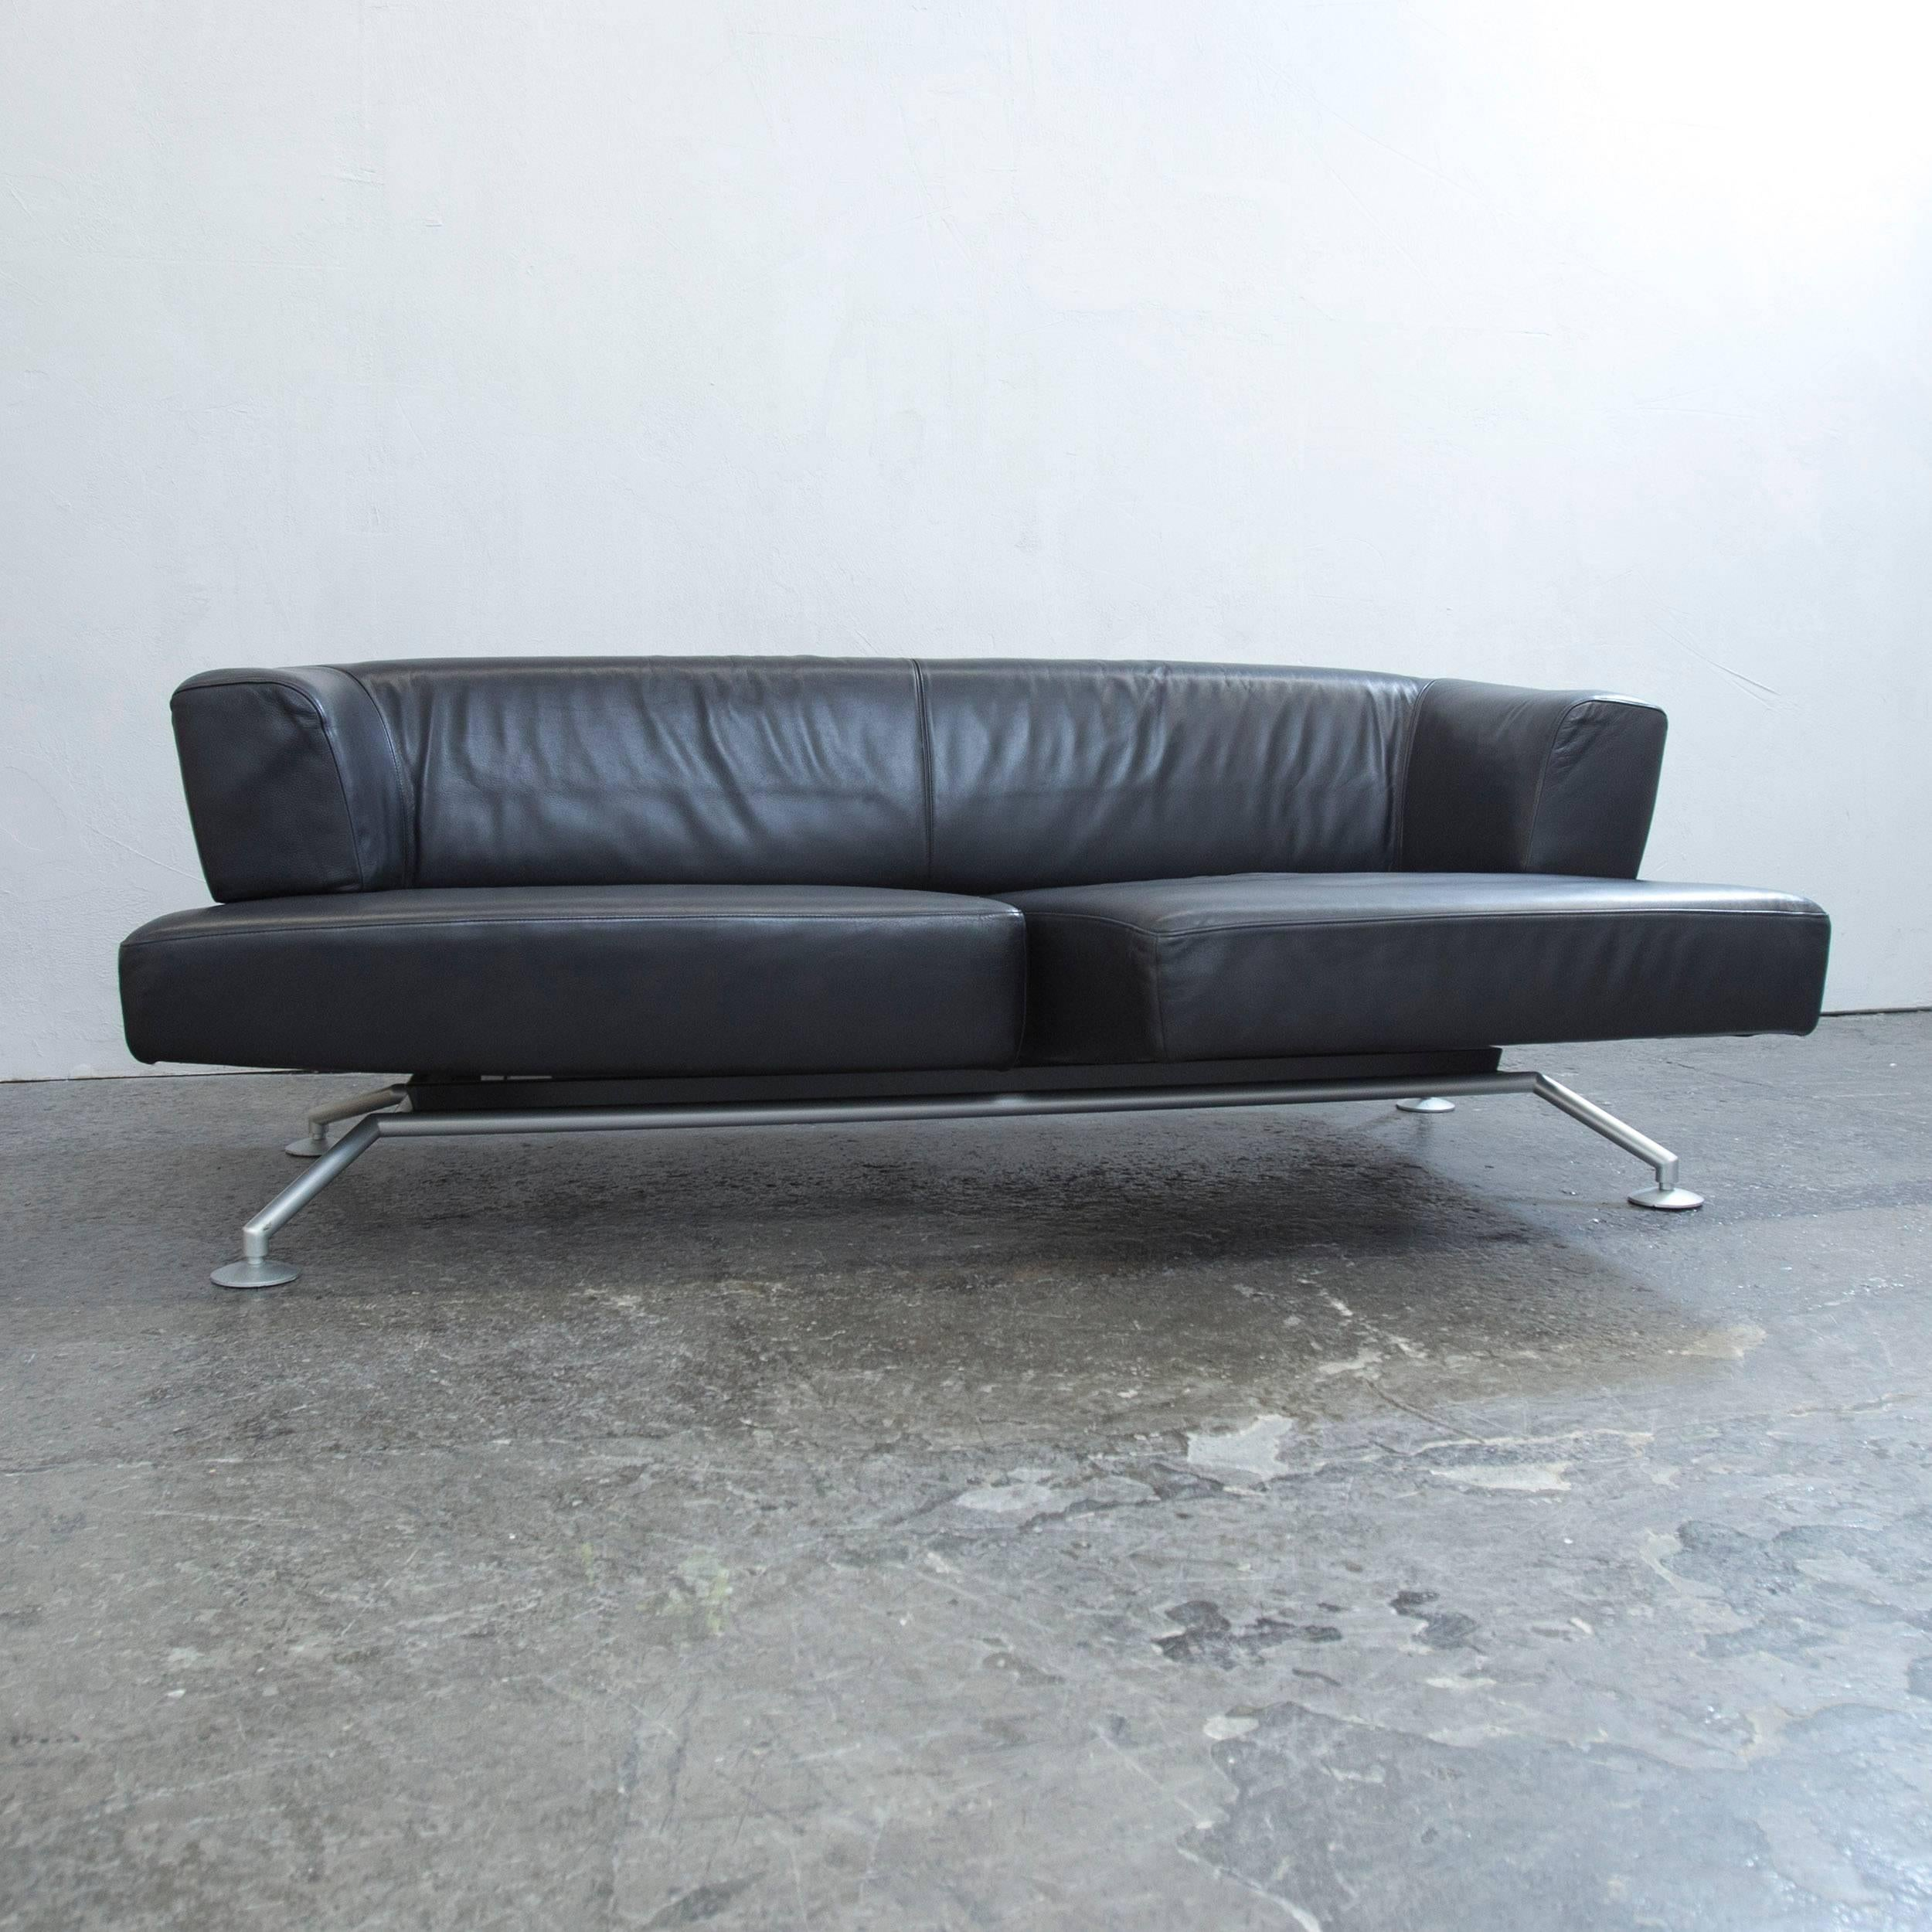 COR Circum Designer Sofa Black Leather Three Seat Couch Function Modern 3 Great Ideas